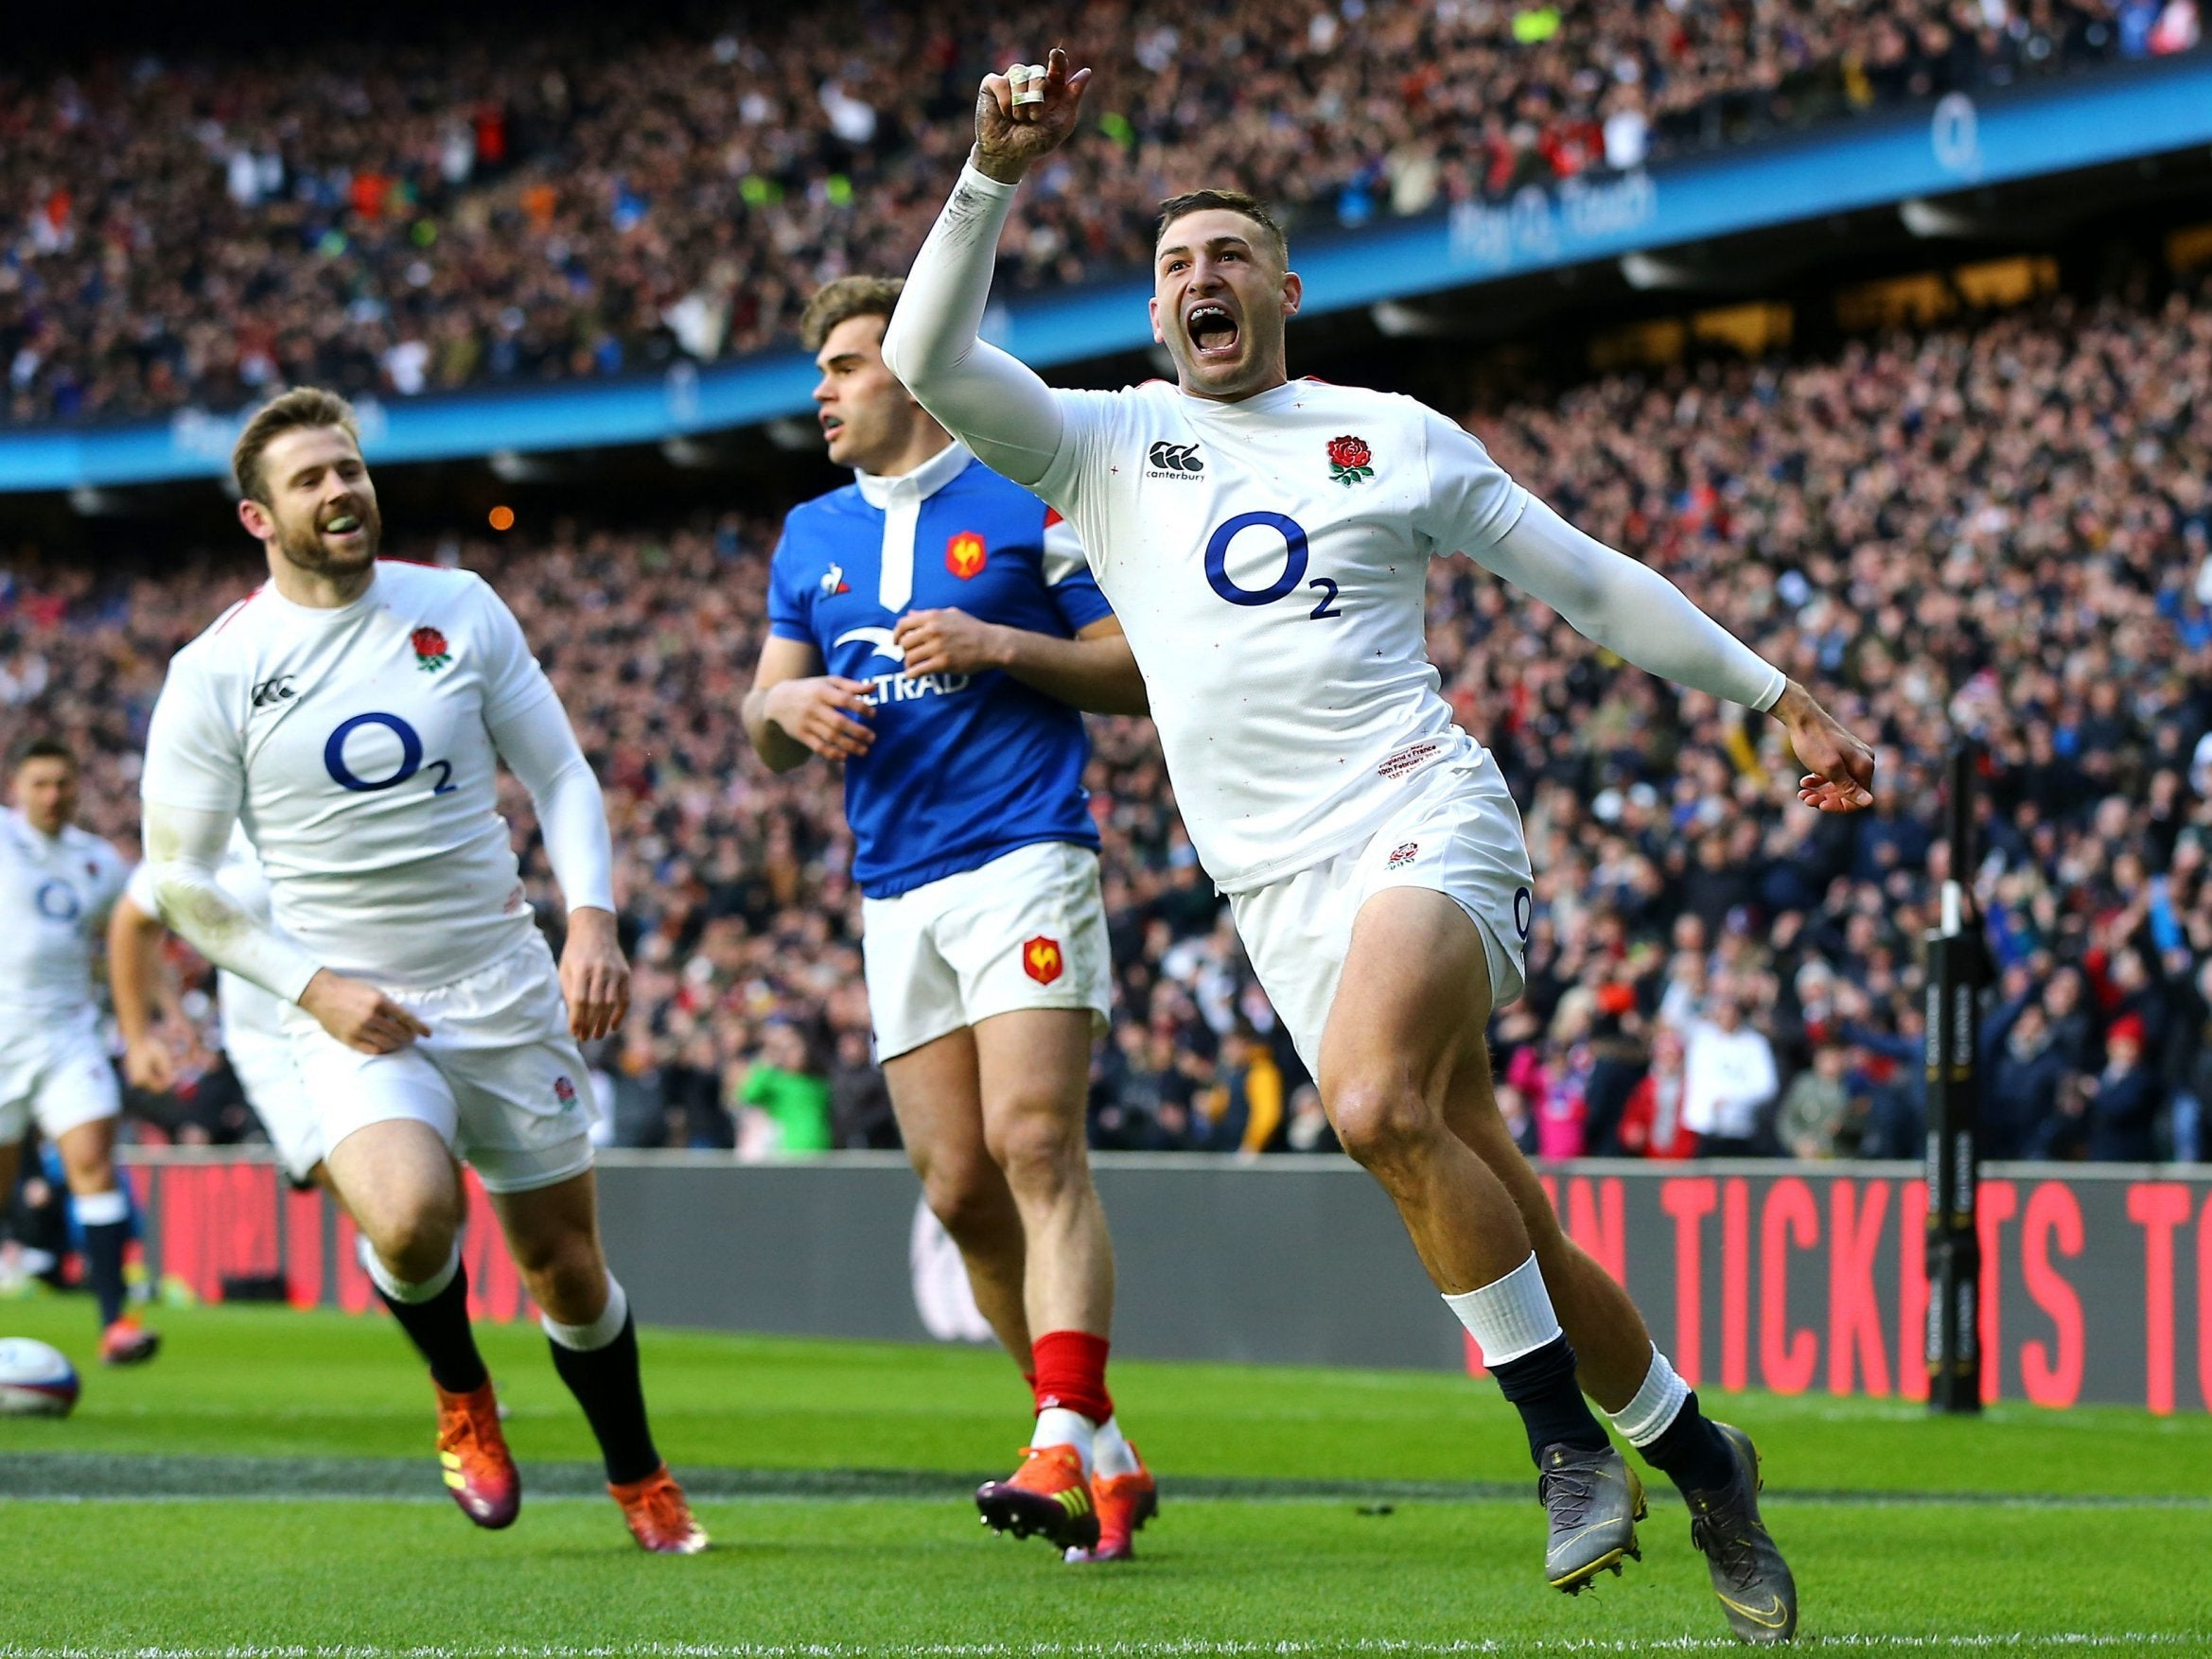 c74a87359f7 Jonny May hat-trick sends England top of the Six Nations in style | The  Independent